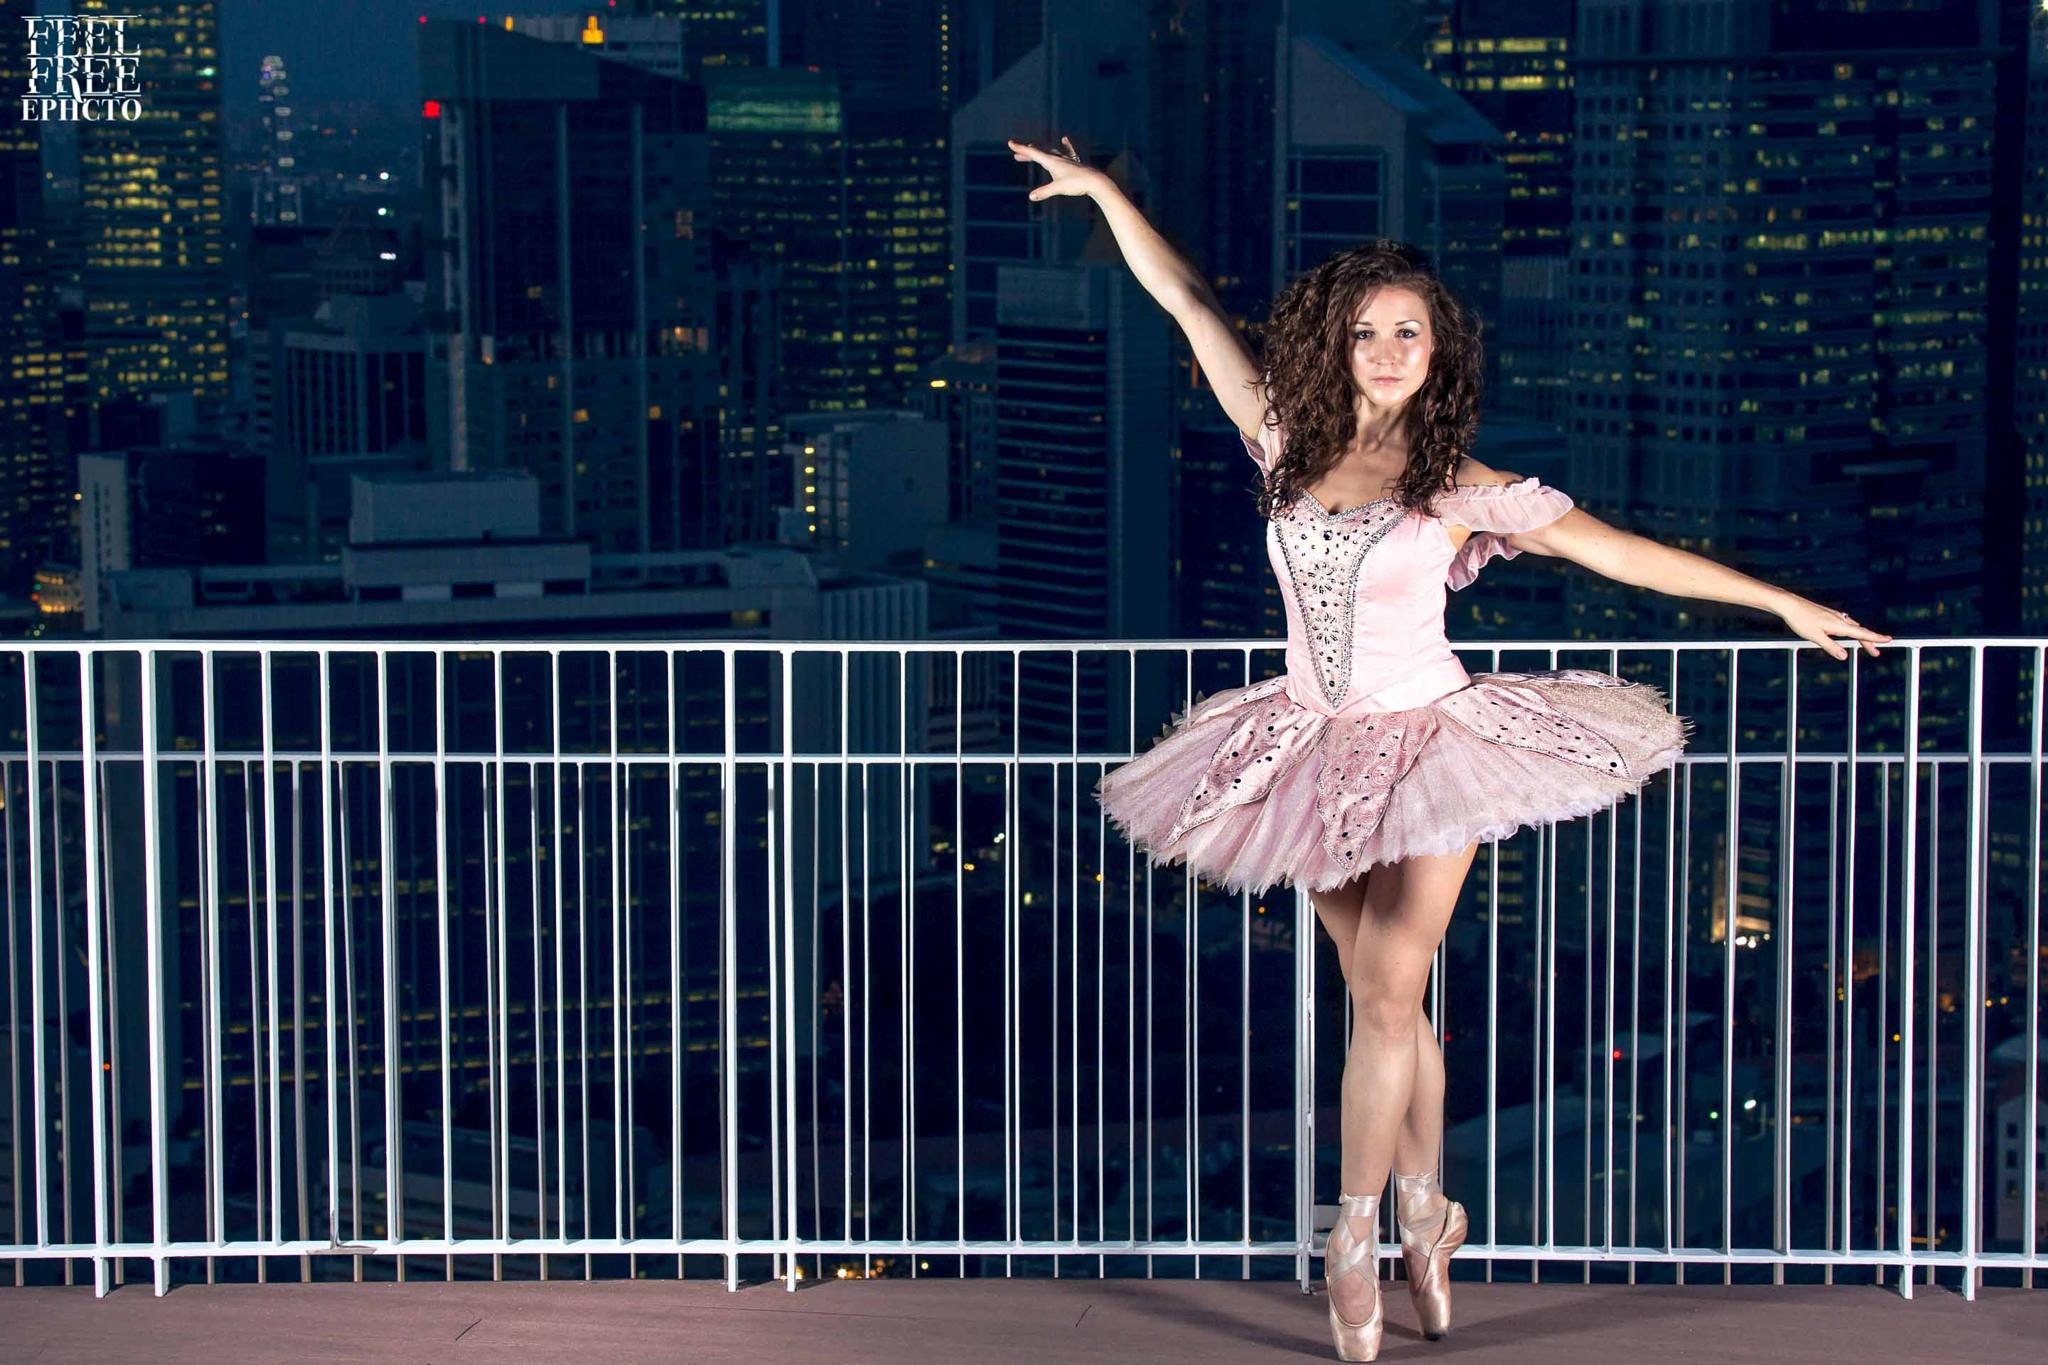 City Ballerina by ephcto  Photography